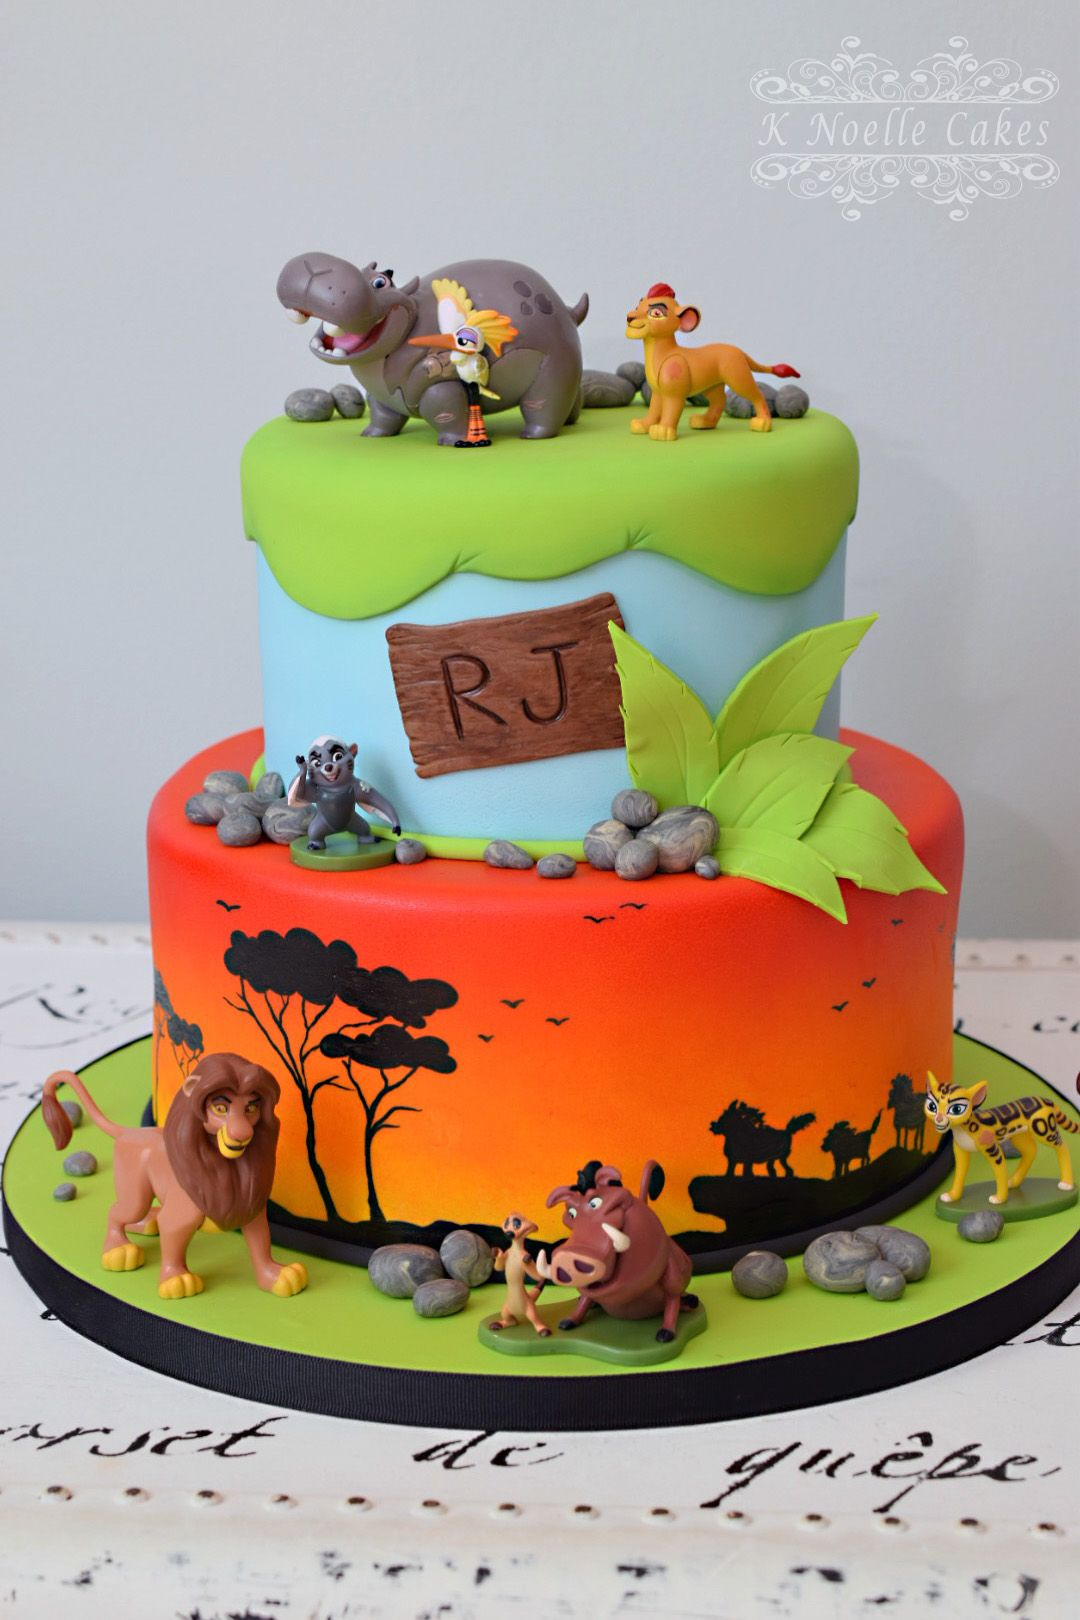 Lion Guard Lion King Theme Cake By K Noelle Cakes